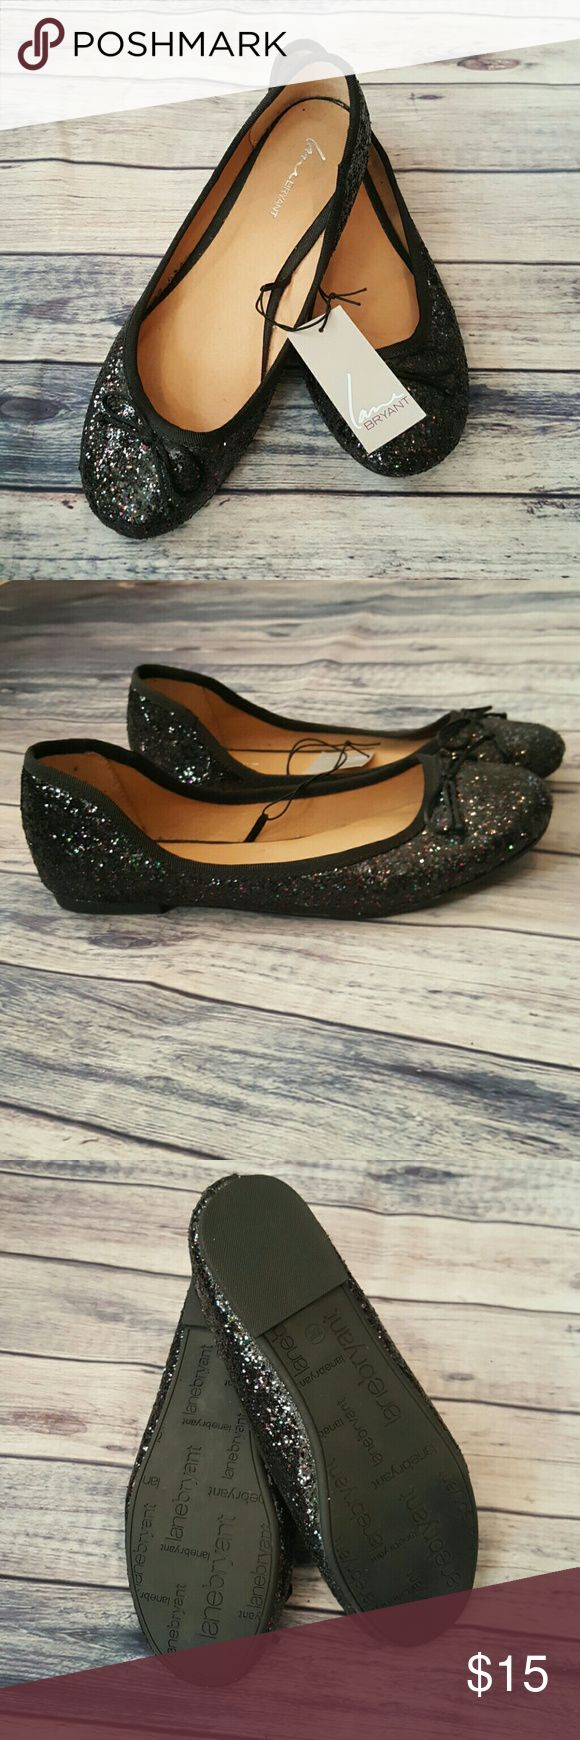 Lane Bryant flats, size 10W NWT Lane Bryant ballet black sparkle flats, size 10W NWT.  All my stuff comes from a smoke free and pet free home.  I encourage you to bundle to save on shipping, so check out my closet for other deals! 312 Lane Bryant Shoes Flats & Loafers